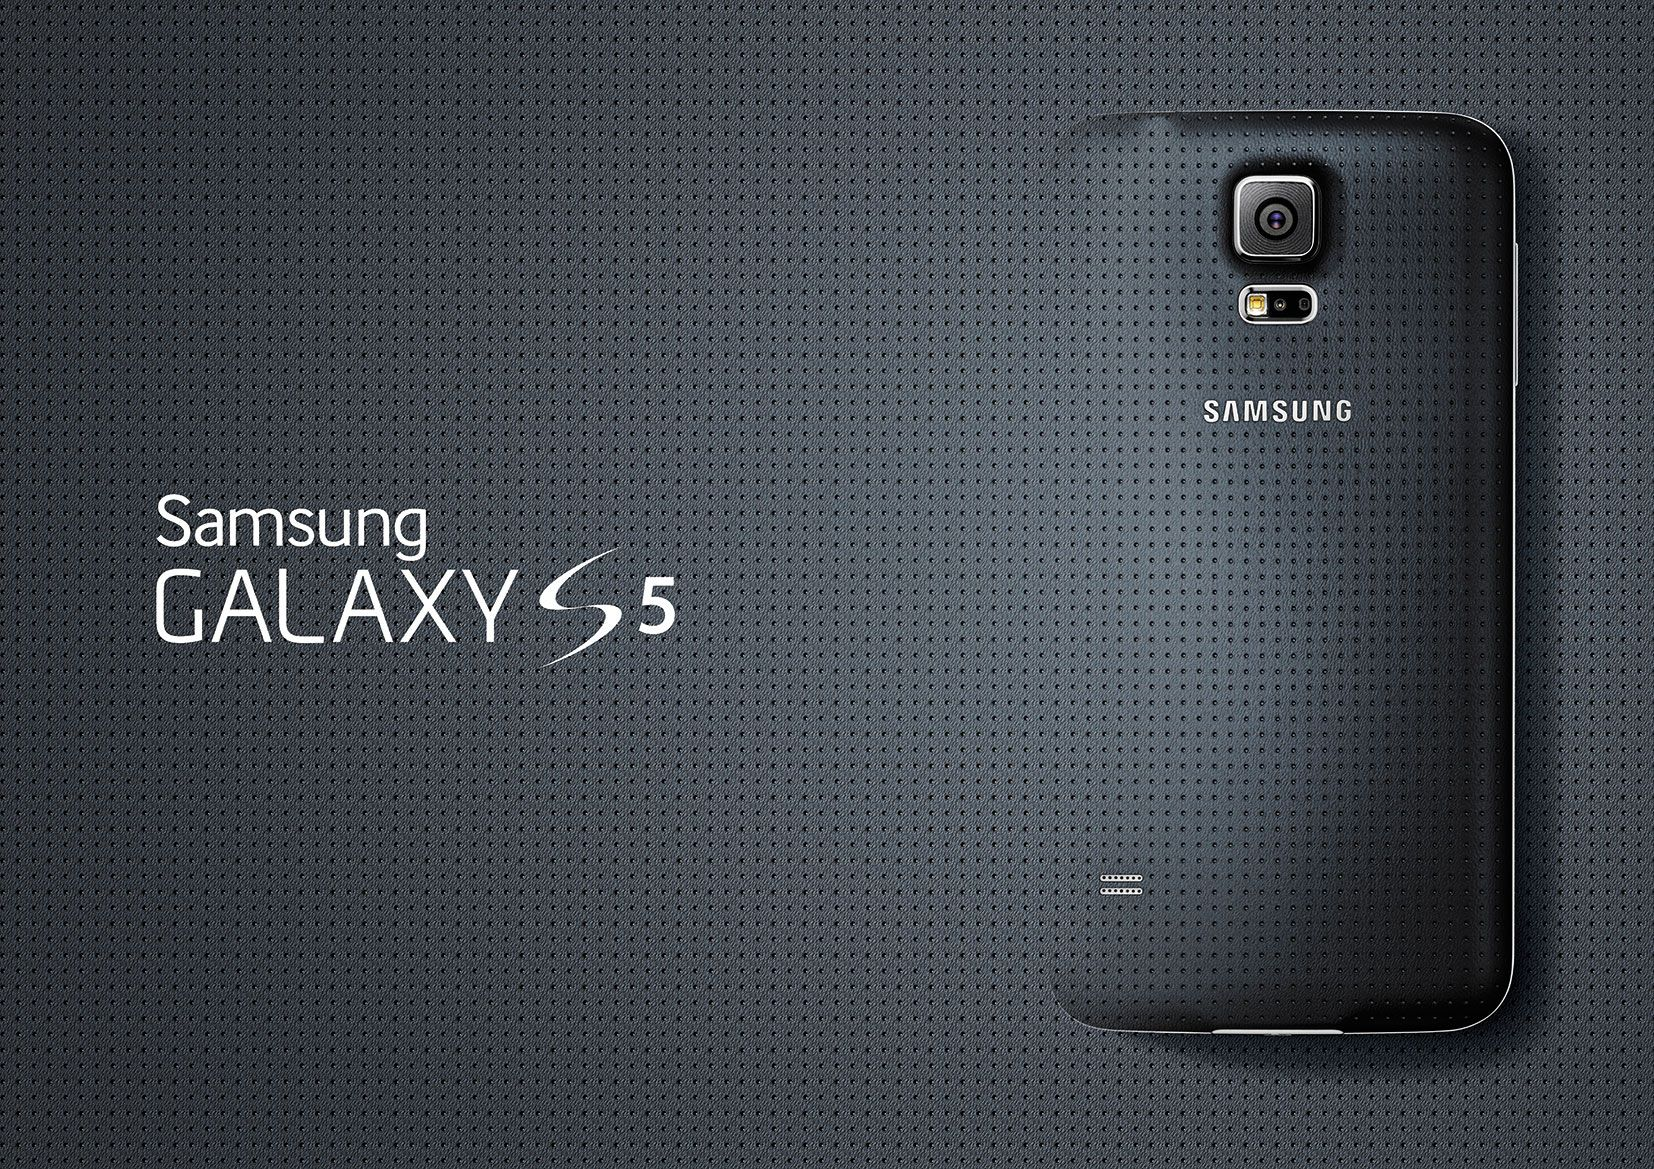 Samsung axes Mobile Design lead in wake of Galaxy S5 axes mobile design lead in wake of galaxy s5